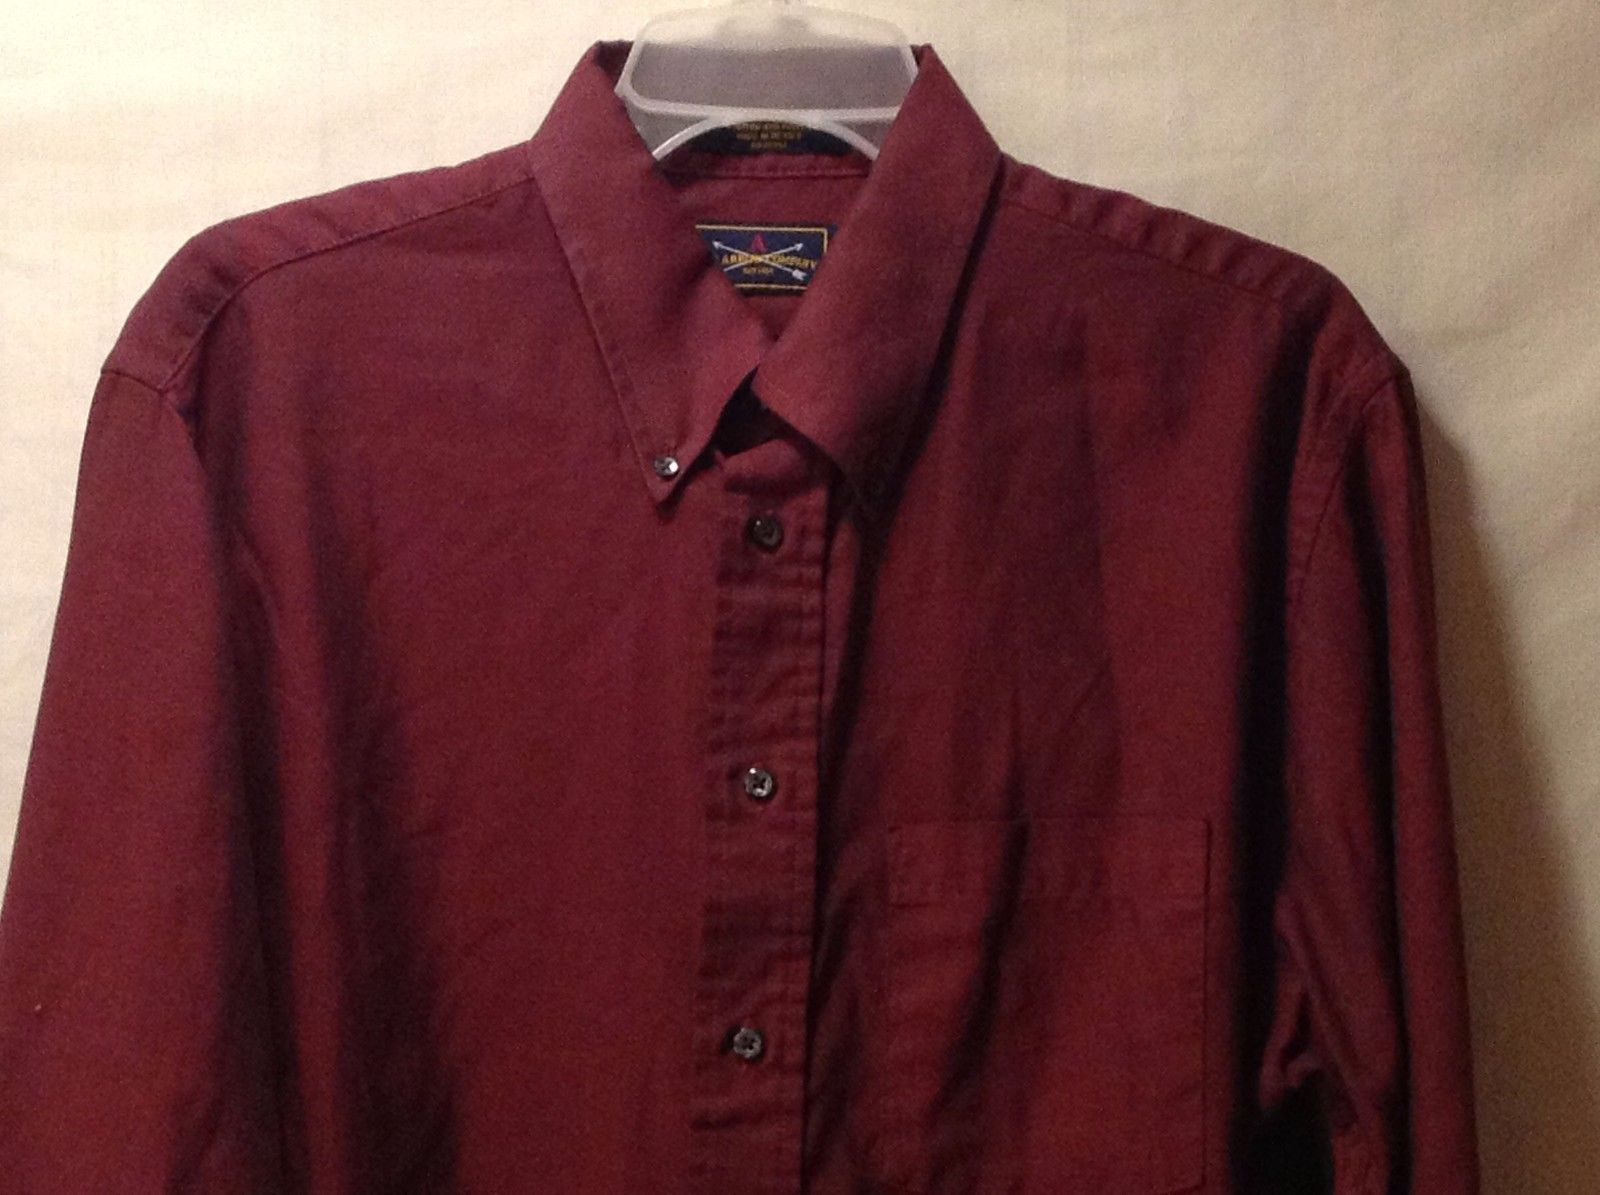 preowned excellent condition mens wine colored dress shirt